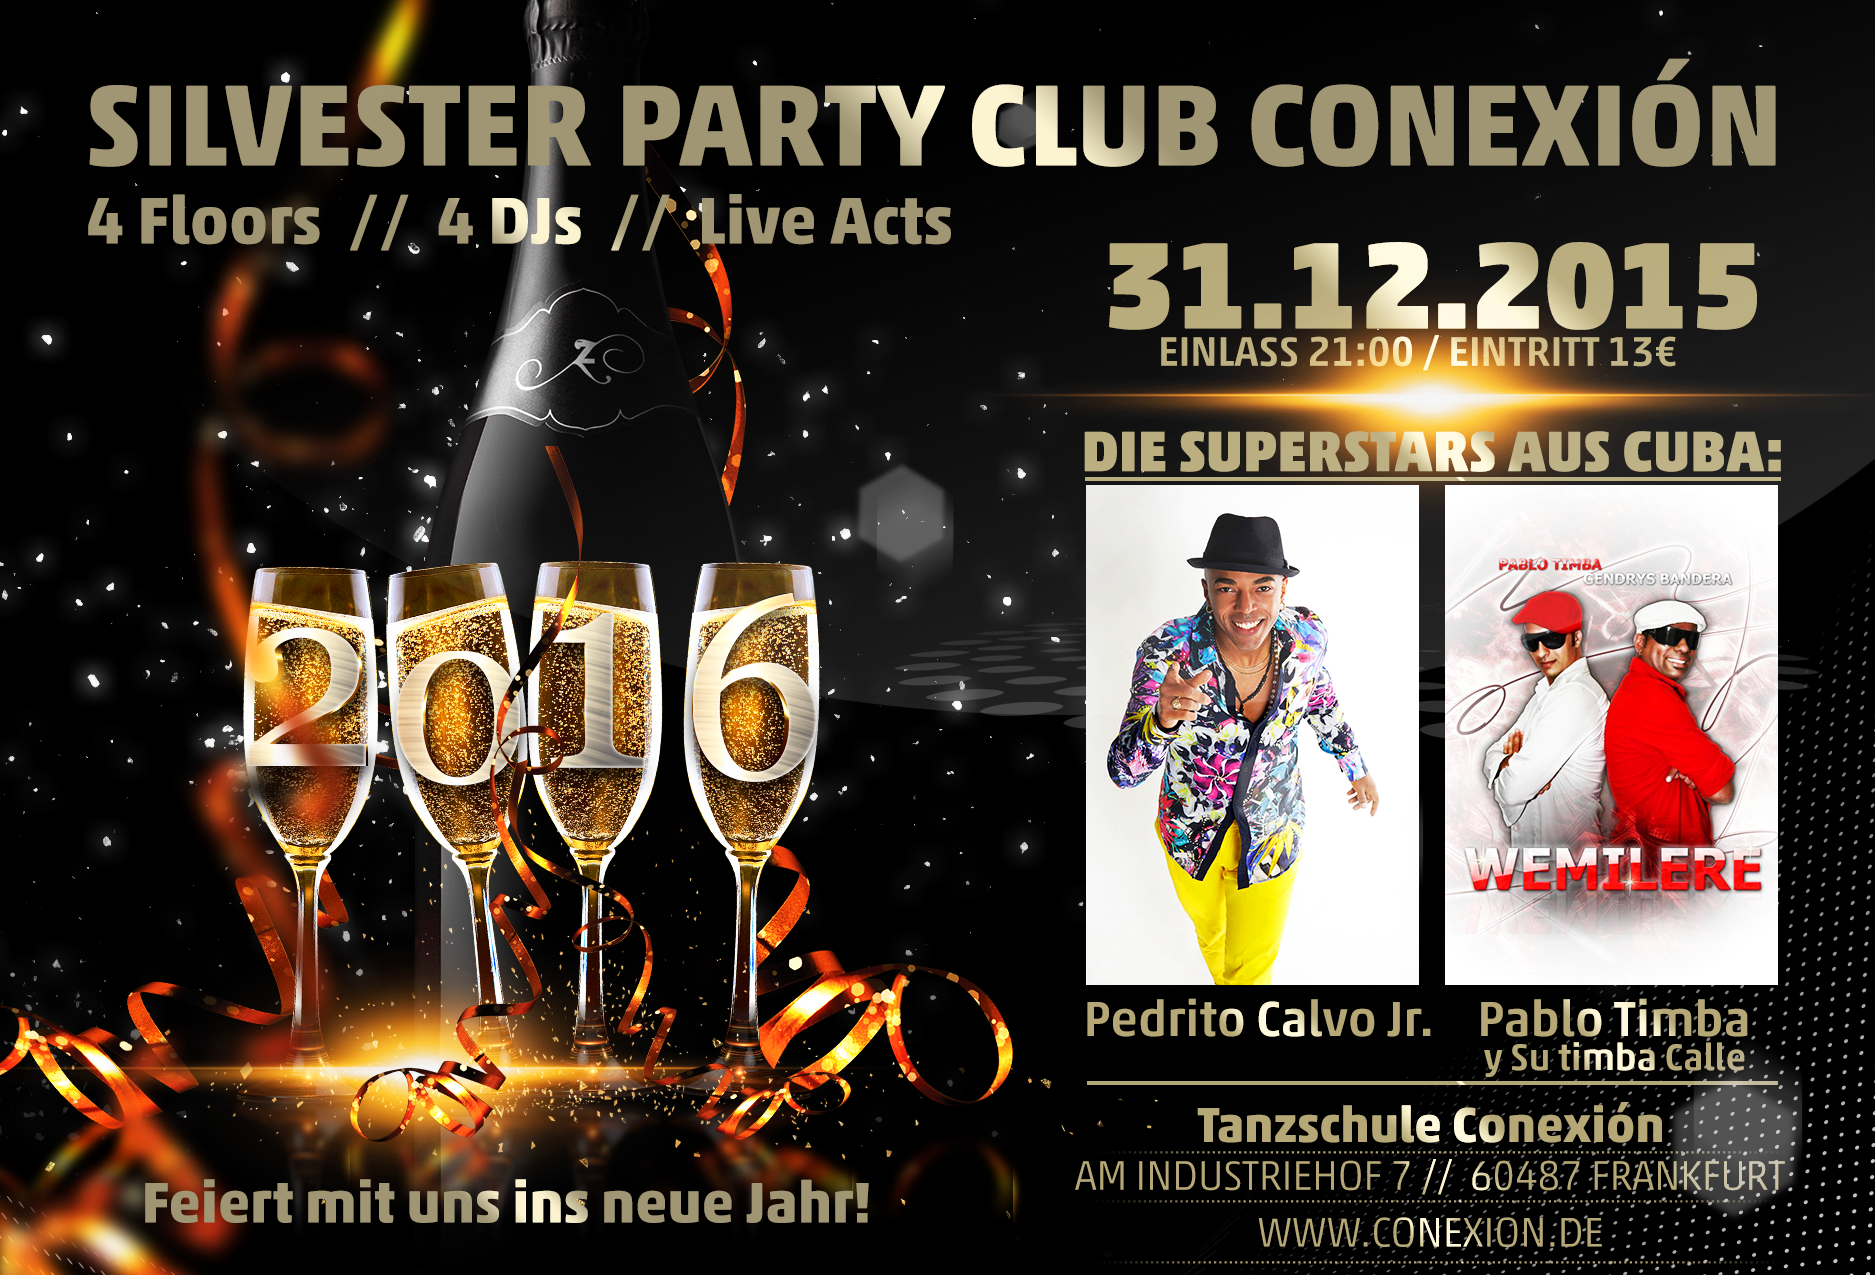 Salsa-Silvesterparty mit LIVE Musik in Frankfurt am Main